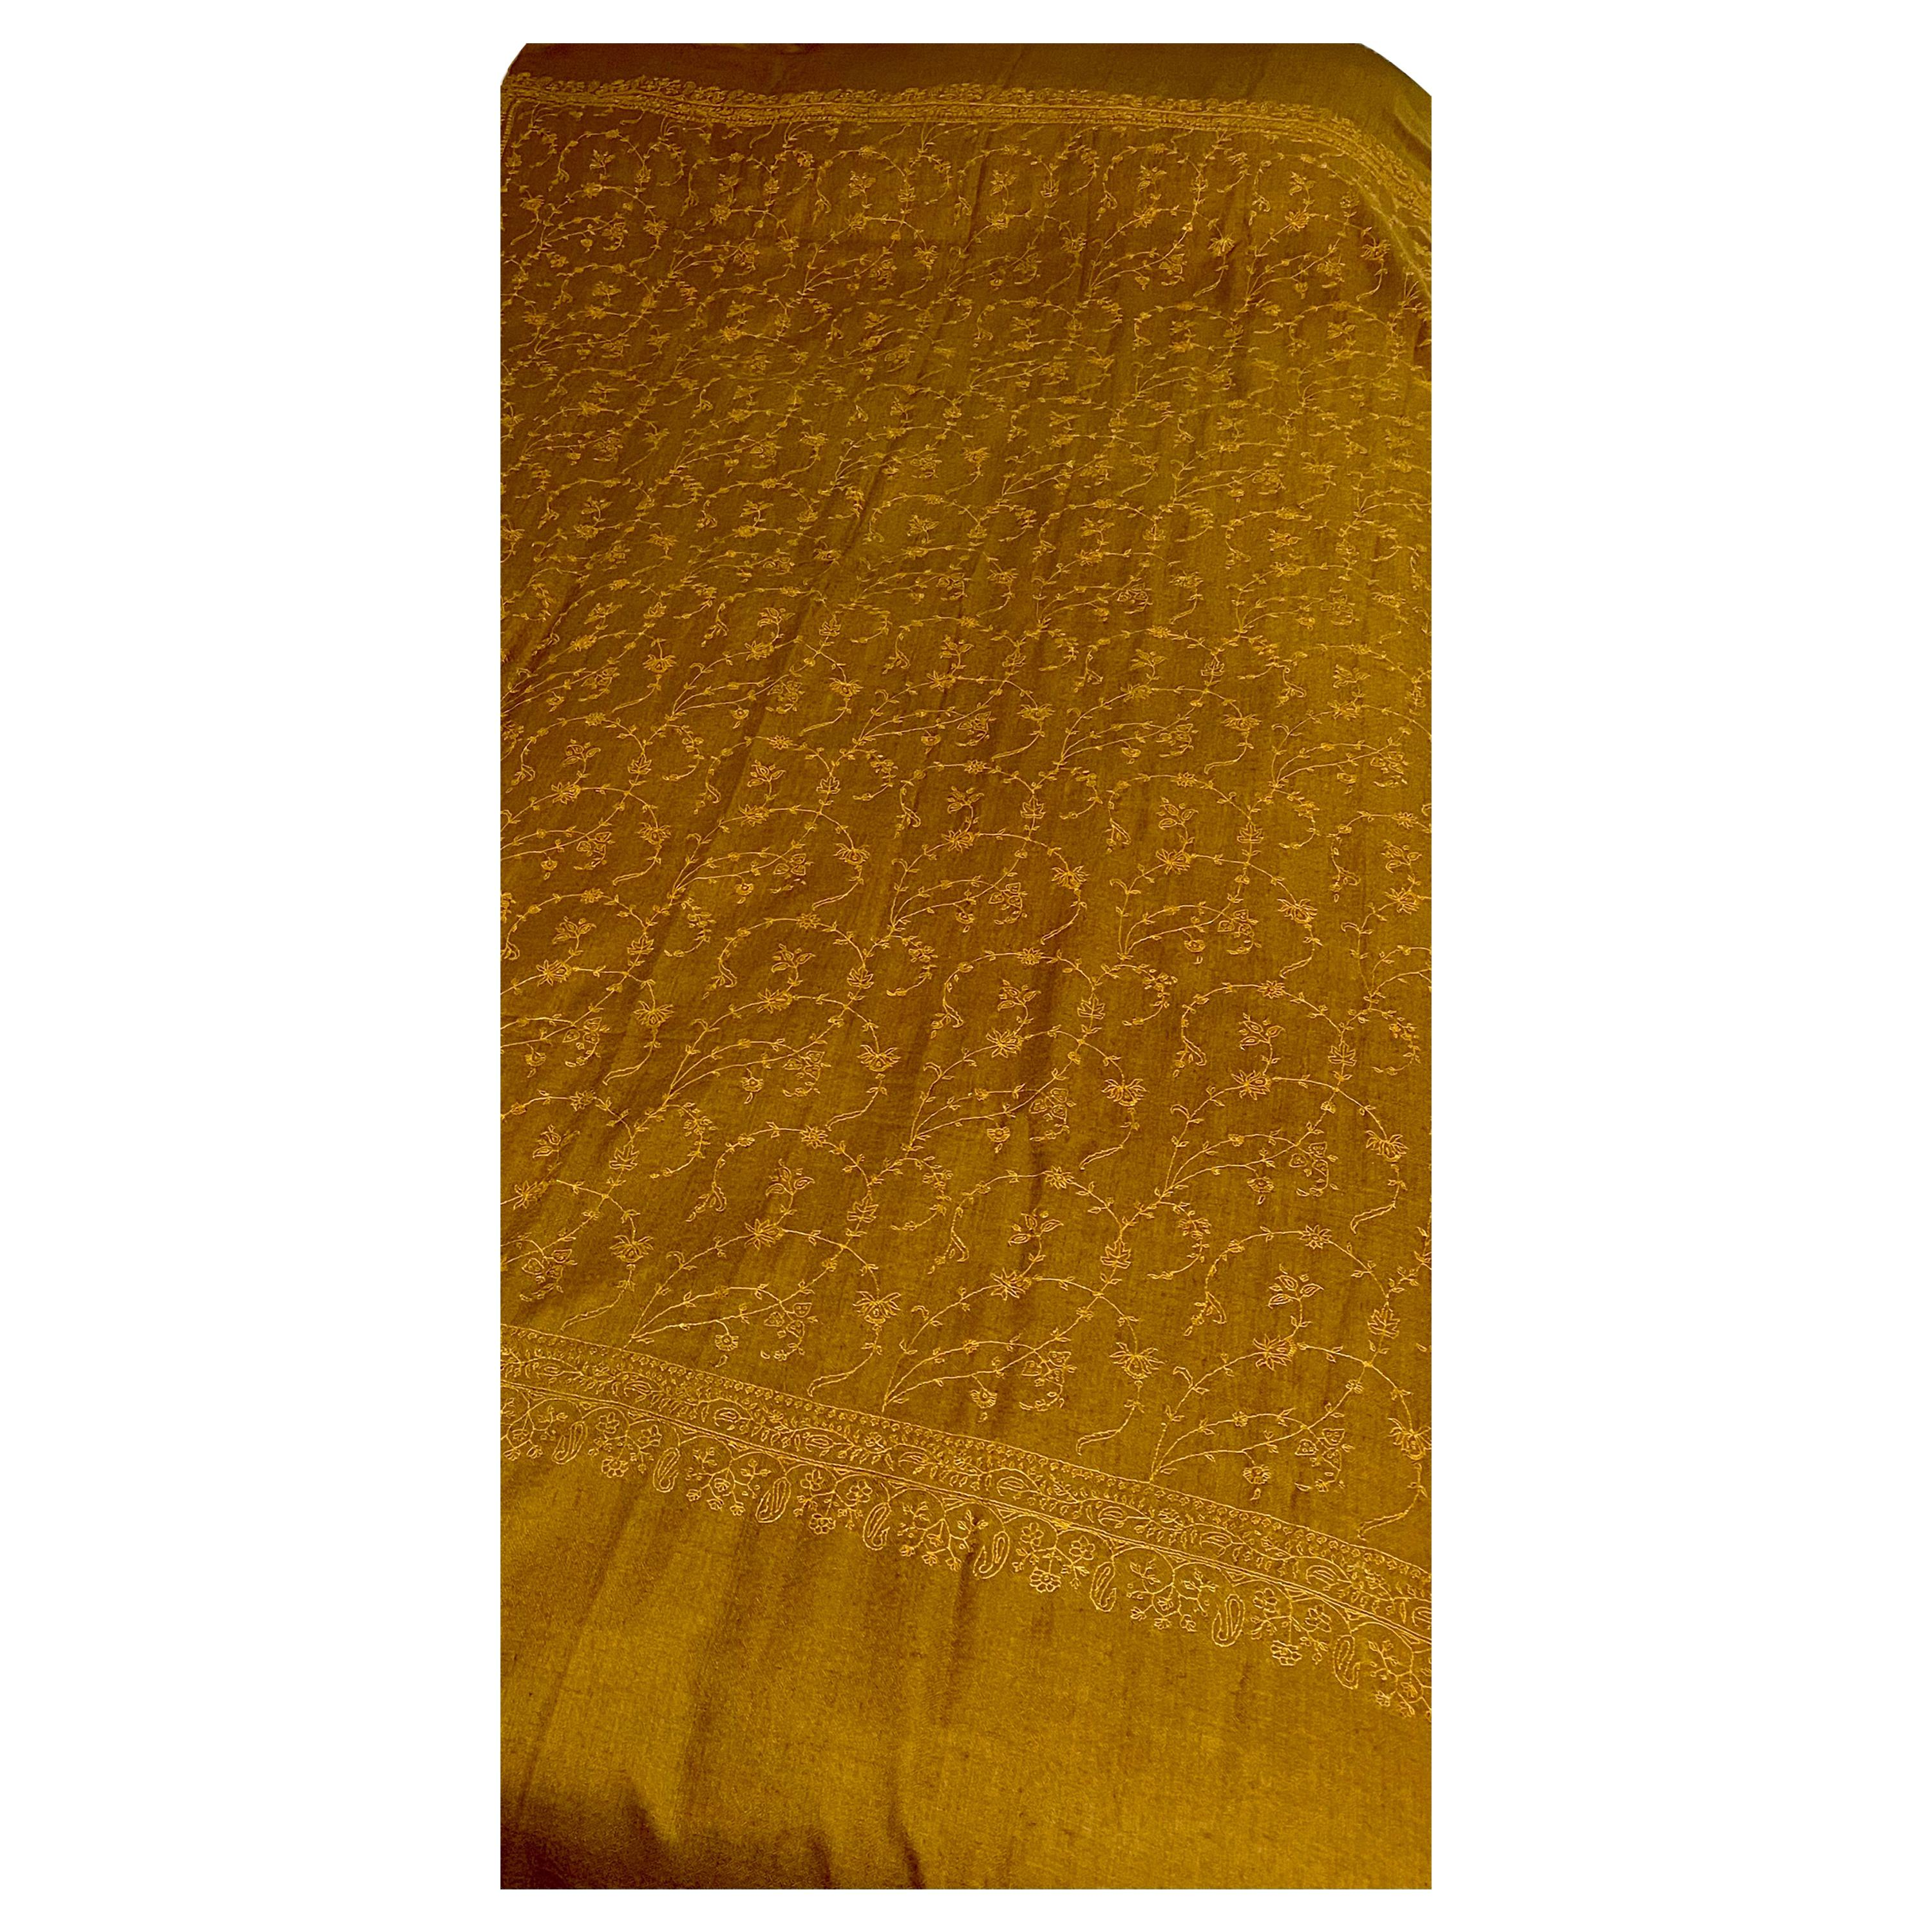 Hand Embroidered 100% Cashmere Pashmina Shawl Golden Brown Made in Kashmir